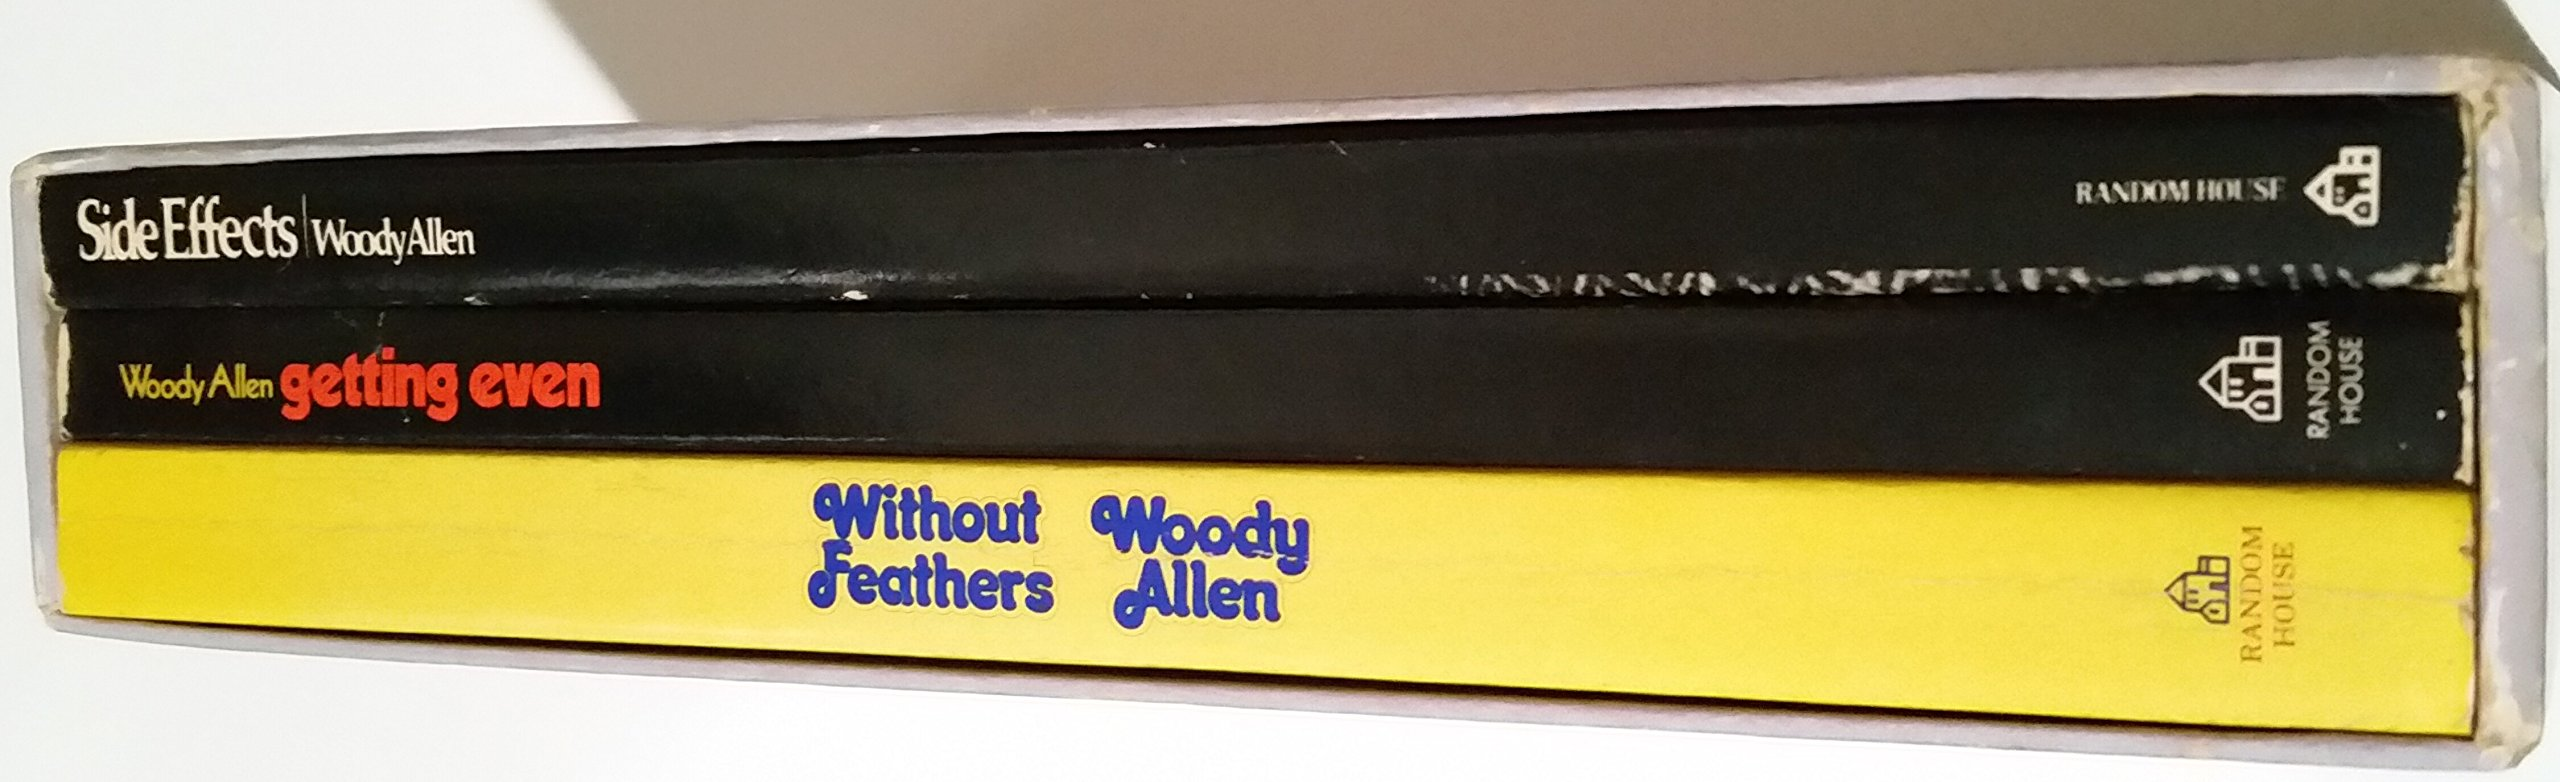 Without Feathers Woody Allen Ebook